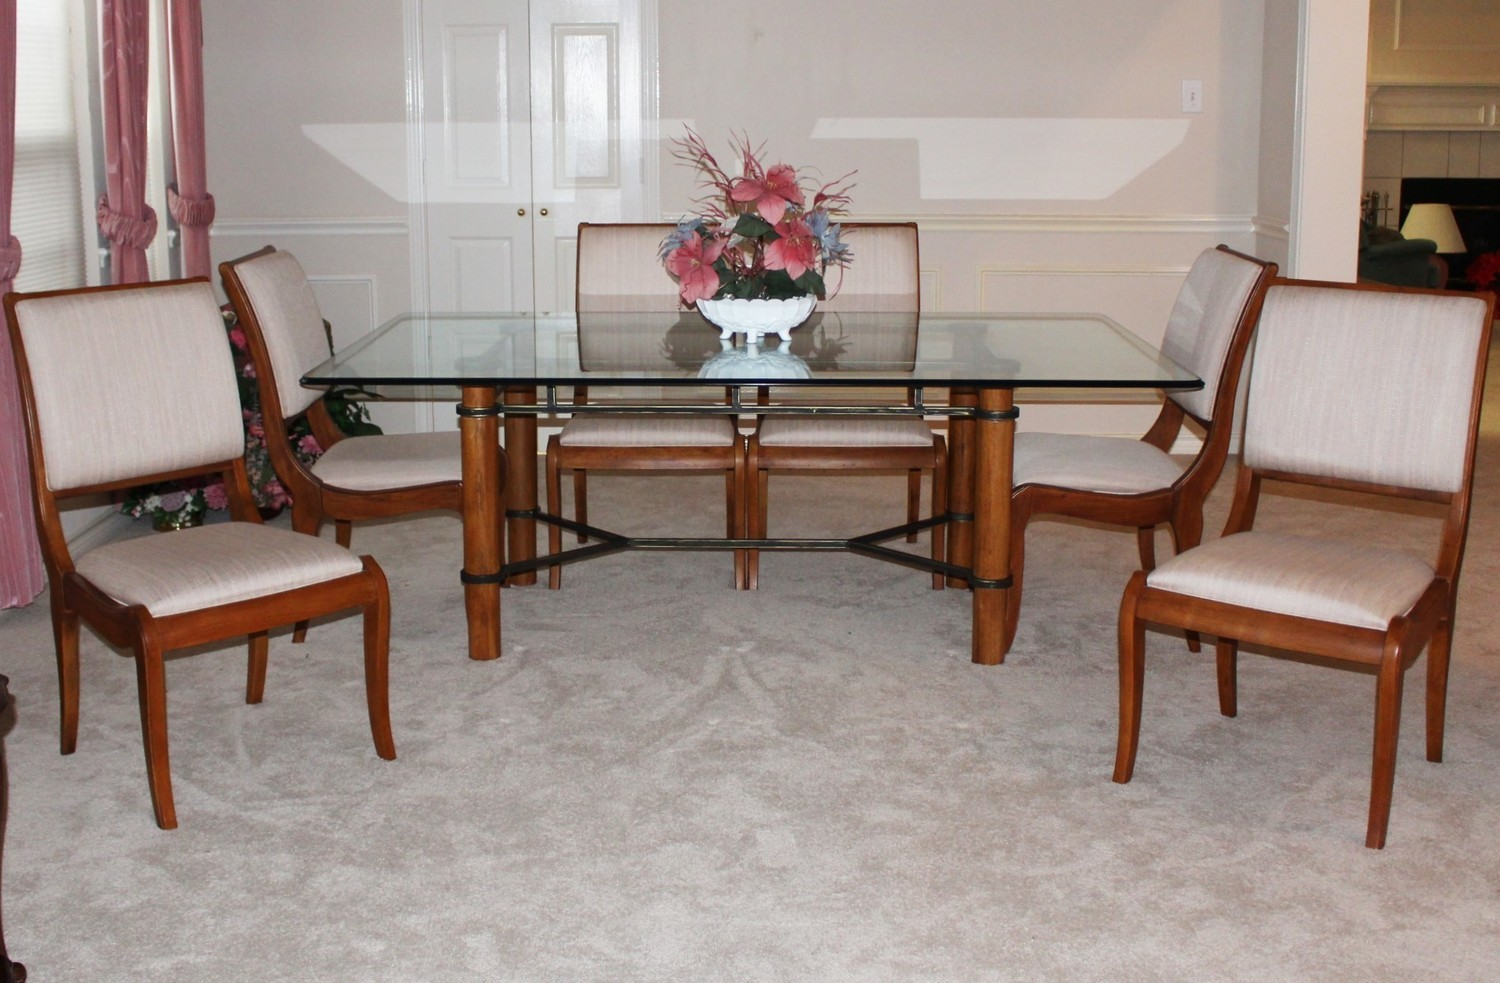 Thomasville Glass Top Dining Table w/ Six Upholstered Chairs